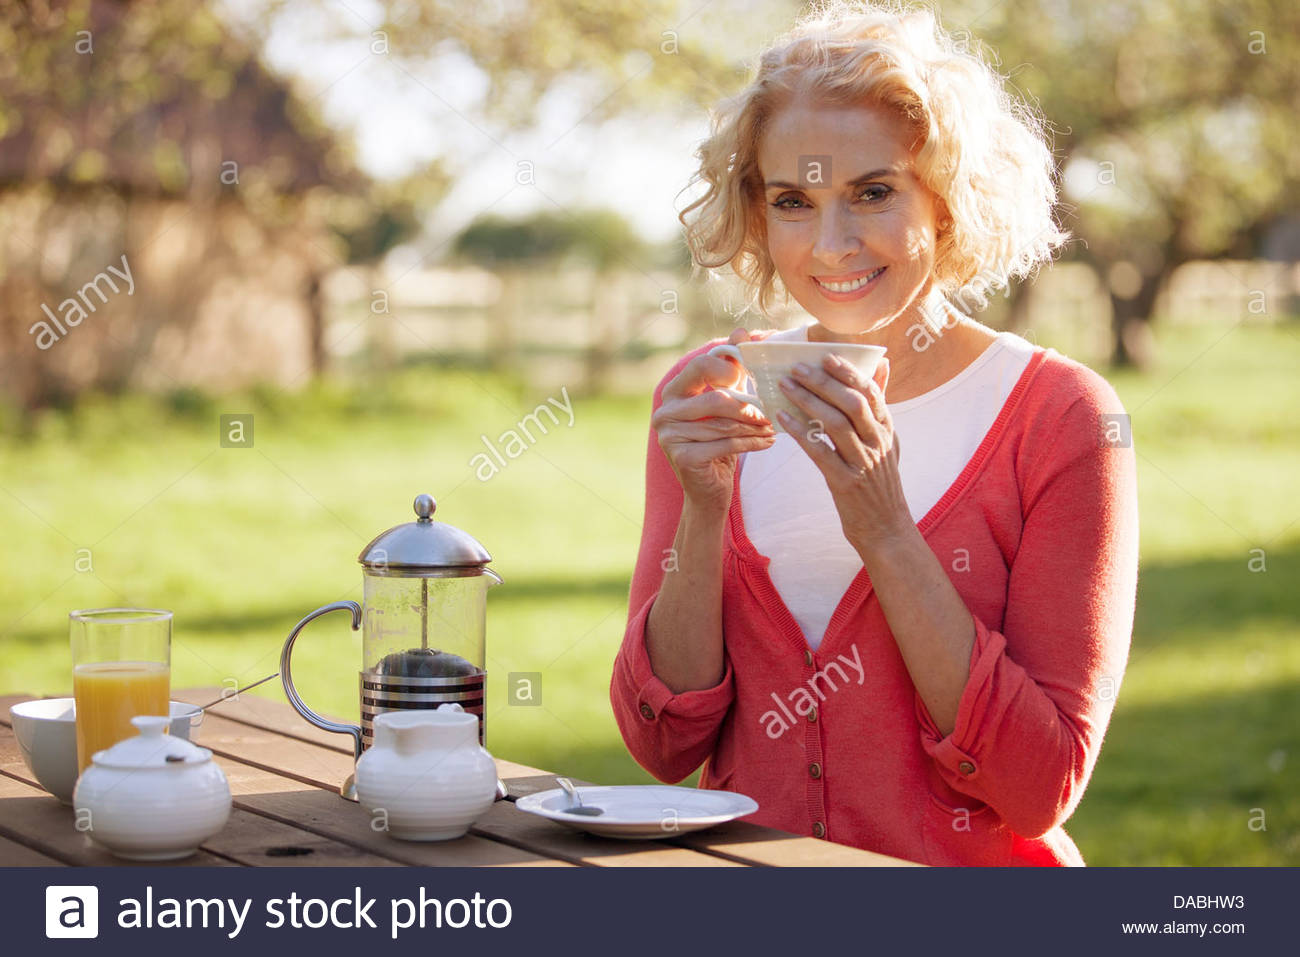 A mature woman sitting at a garden bench drinking coffee - Stock Image